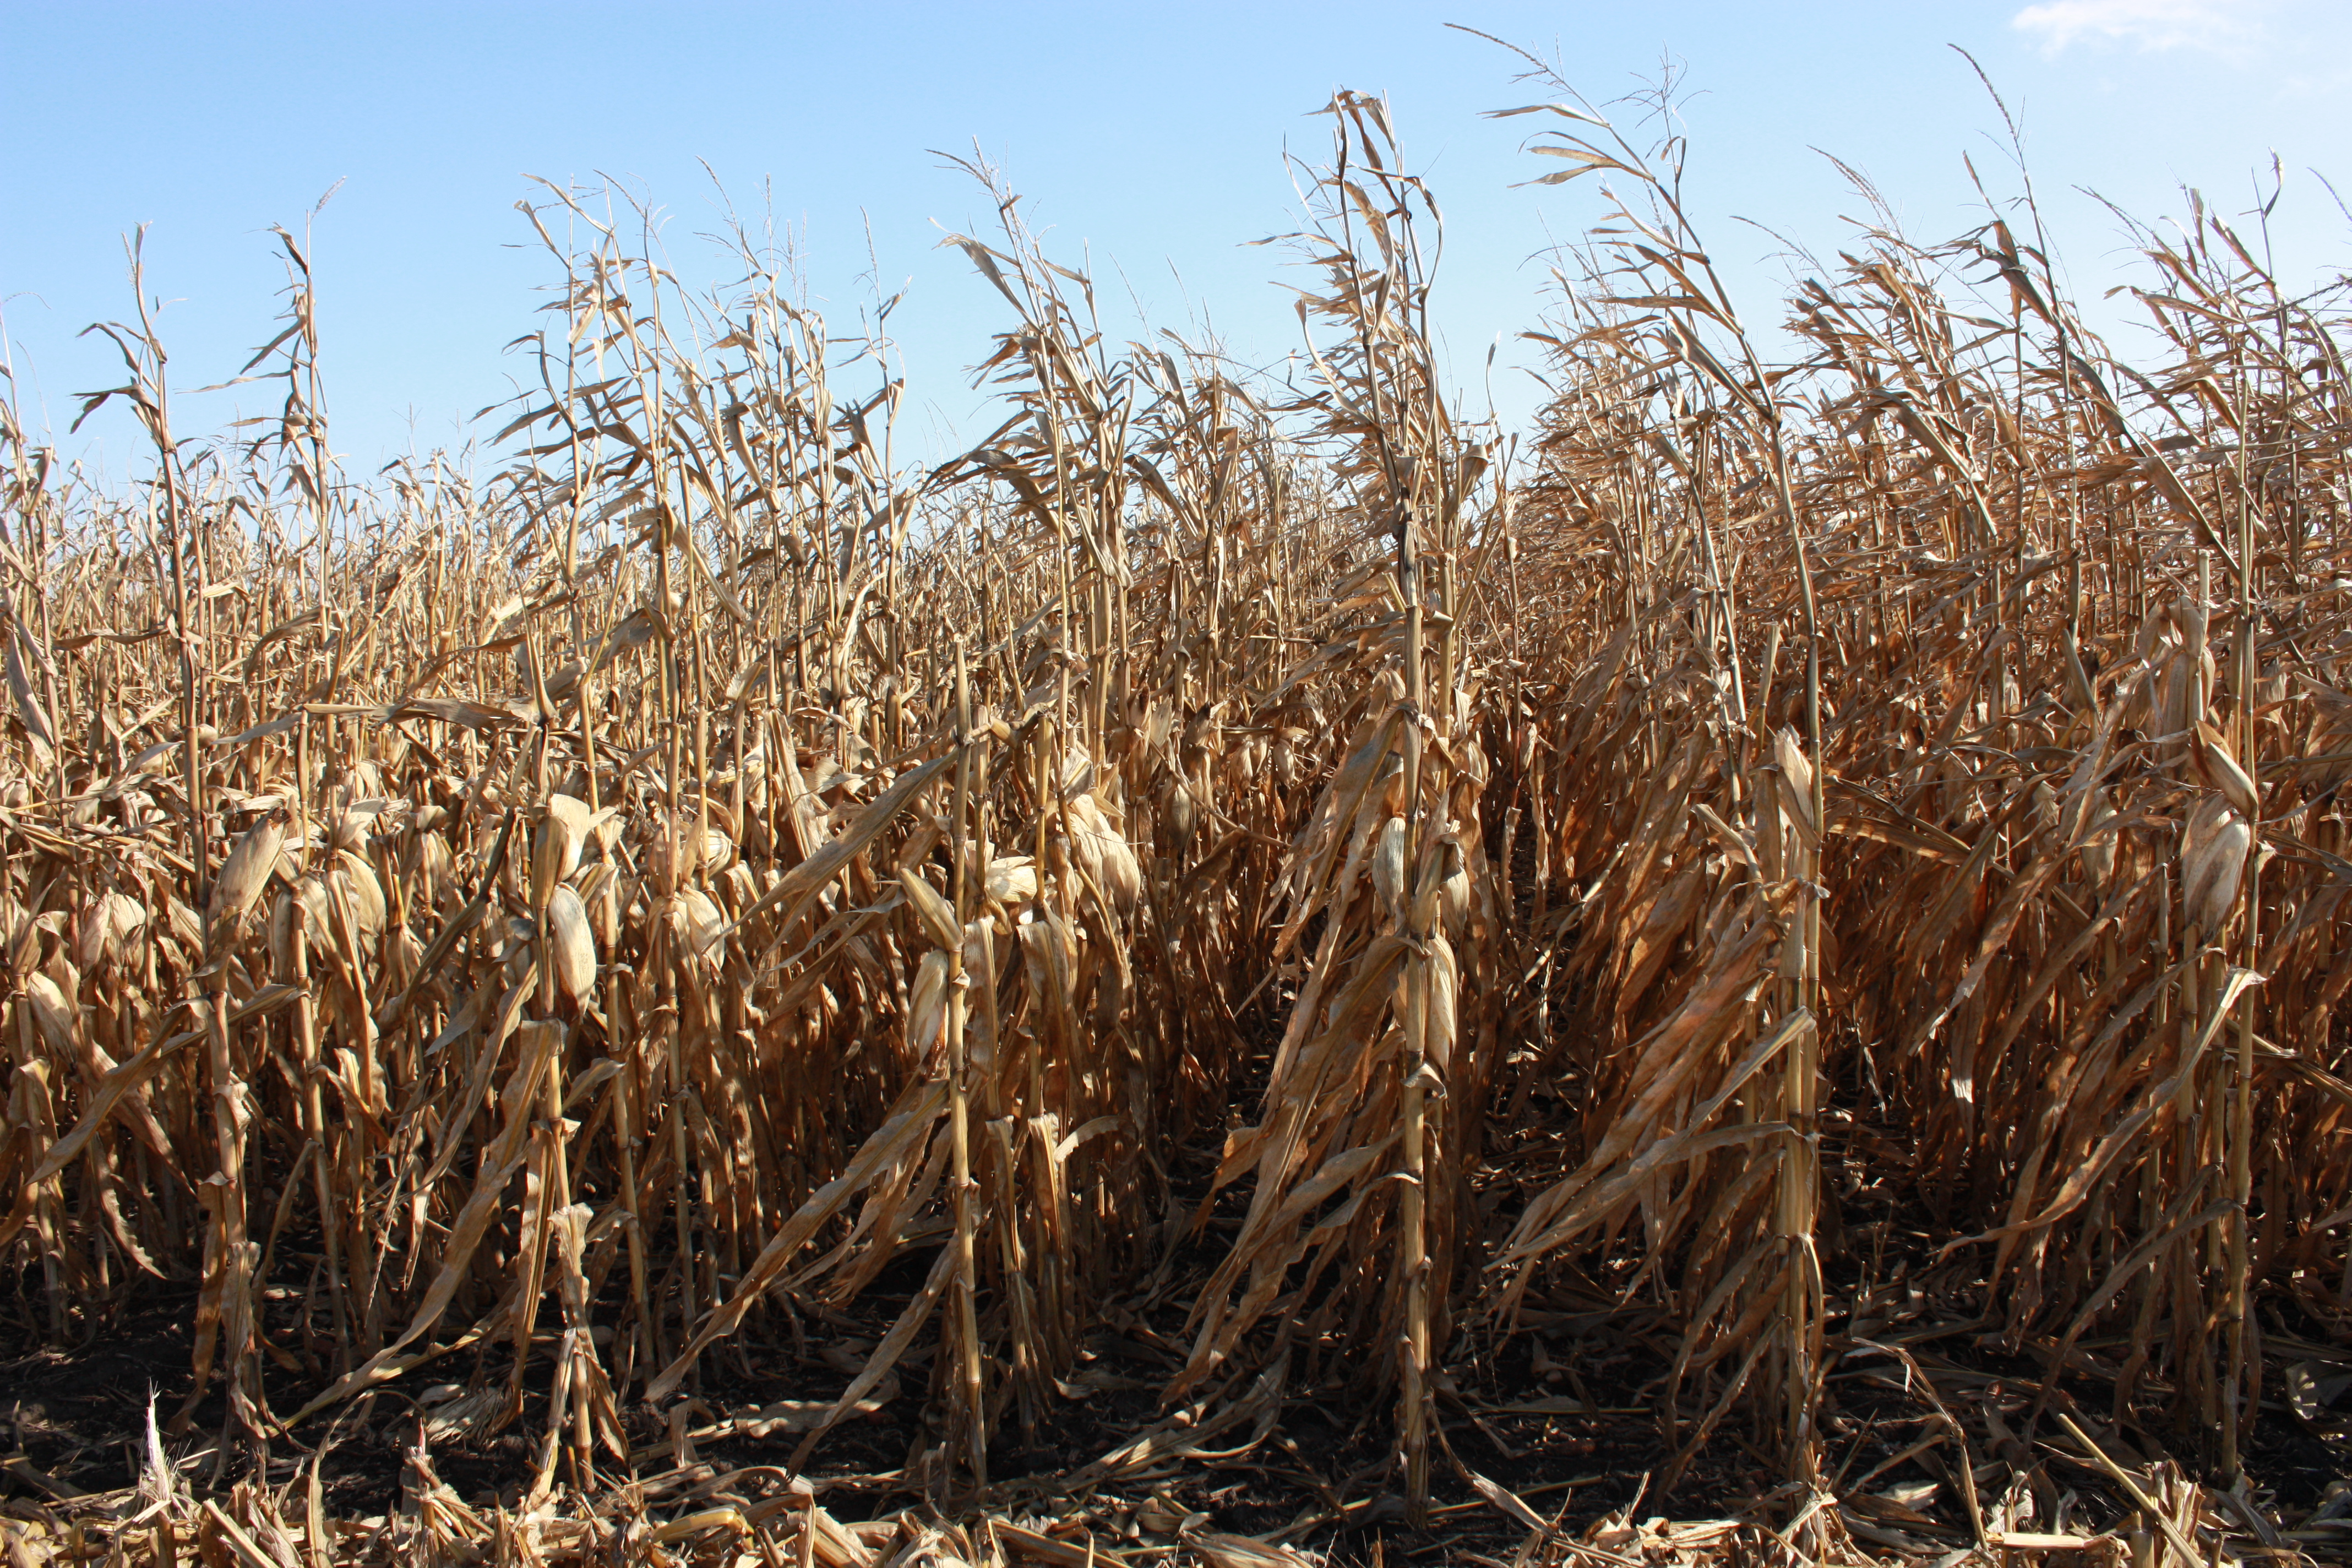 This agronomic image shows corn rows ready for harvest.